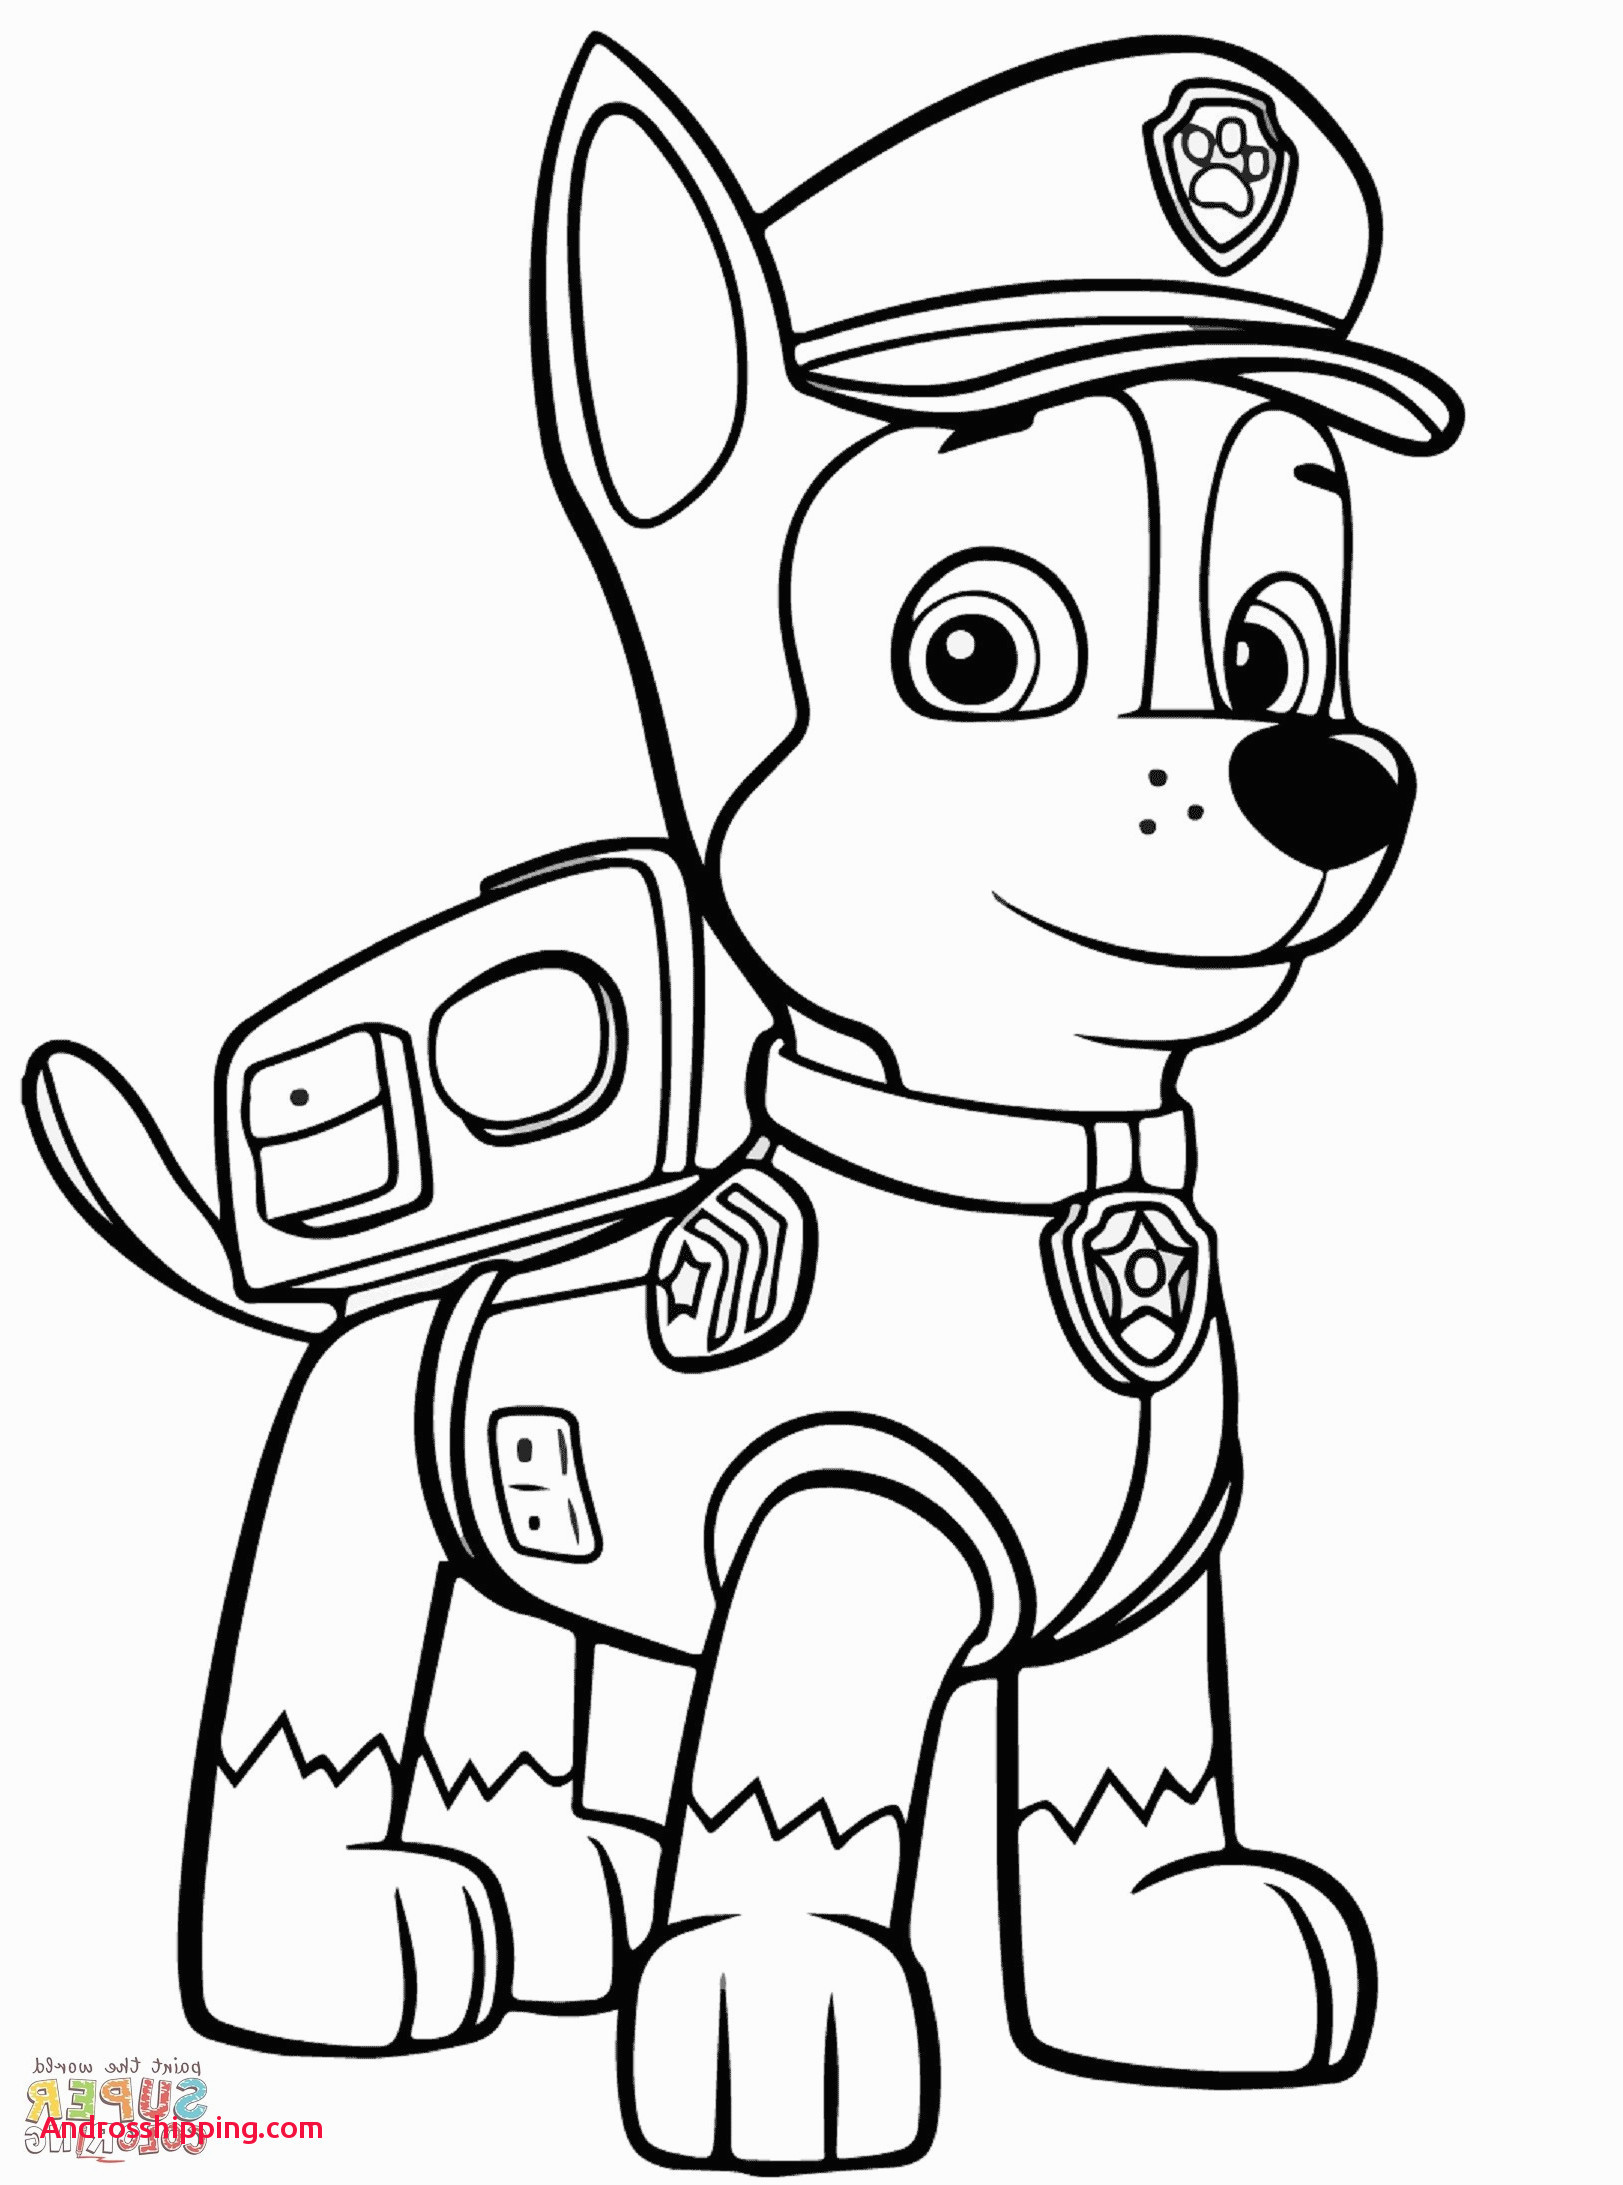 Paw Patrol Ausmalen Genial 10 Awesome Coloring Pages Zuma From Paw Patrol androsshipping Genial Bild